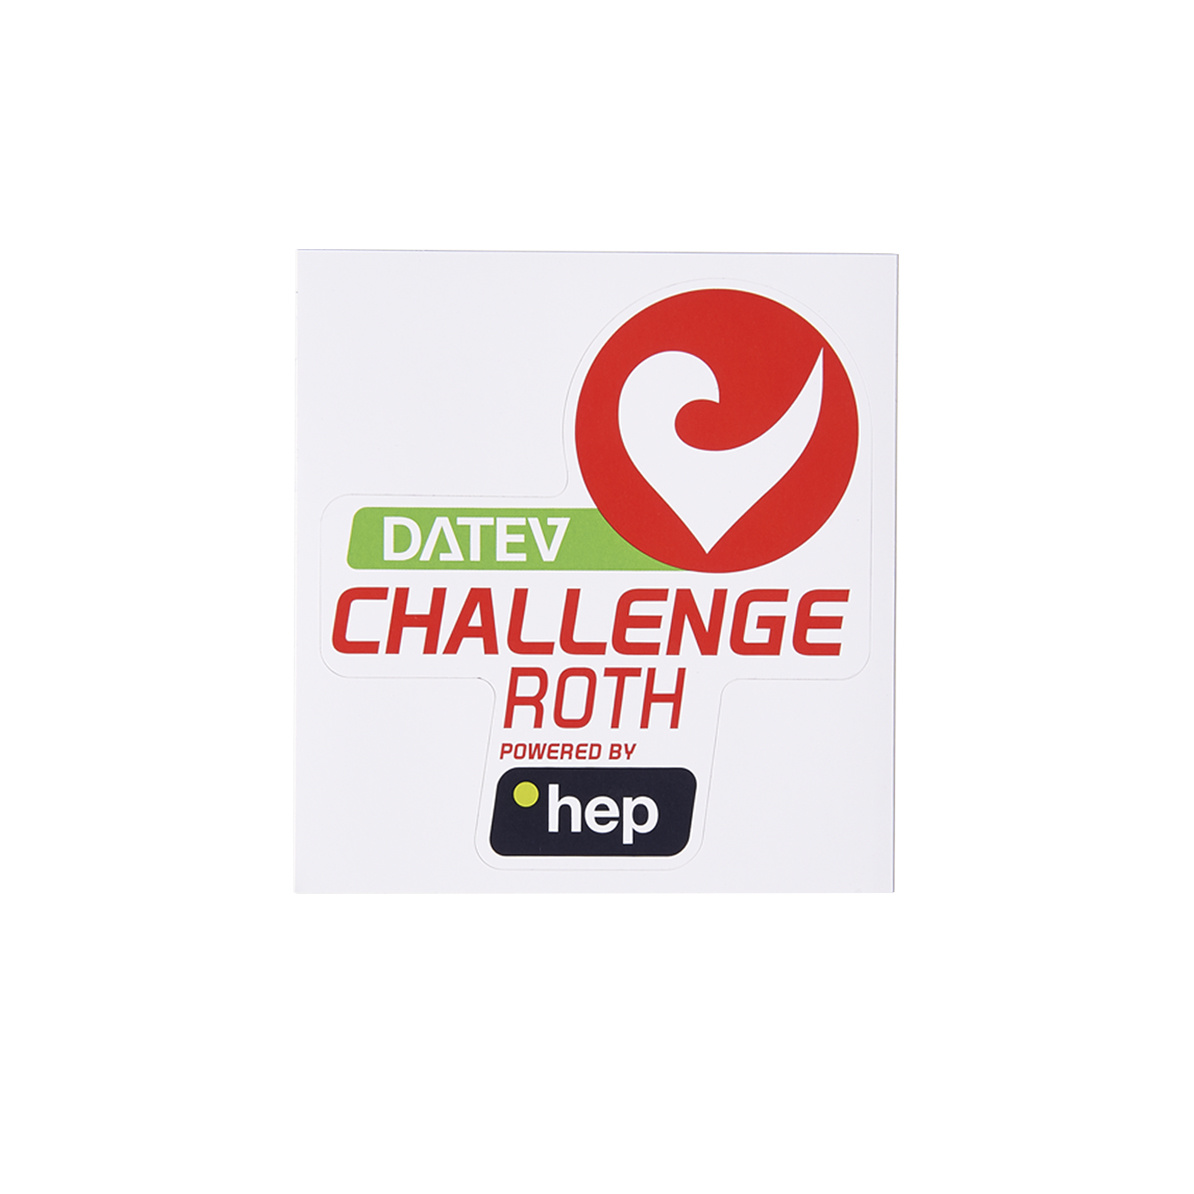 Sticker DATEV Challenge Roth powered by hep small-3